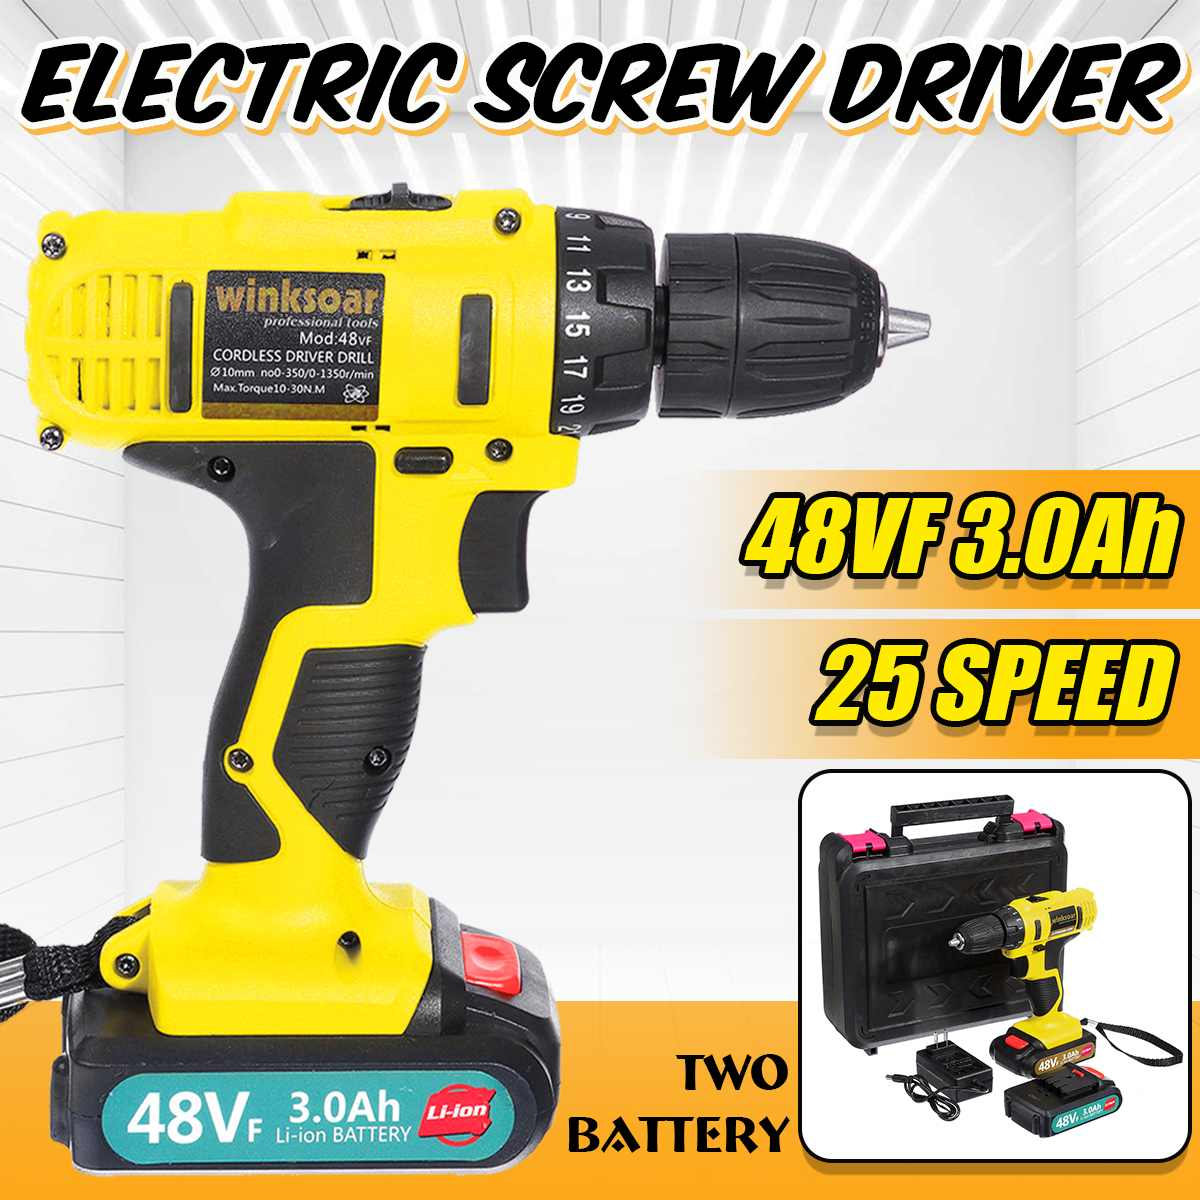 48V Cordless Electric Screwdriver Impact Drill 25+1 Double Speed Rechargeable Li-Ion Battery Operated LED Lighting Power Tools